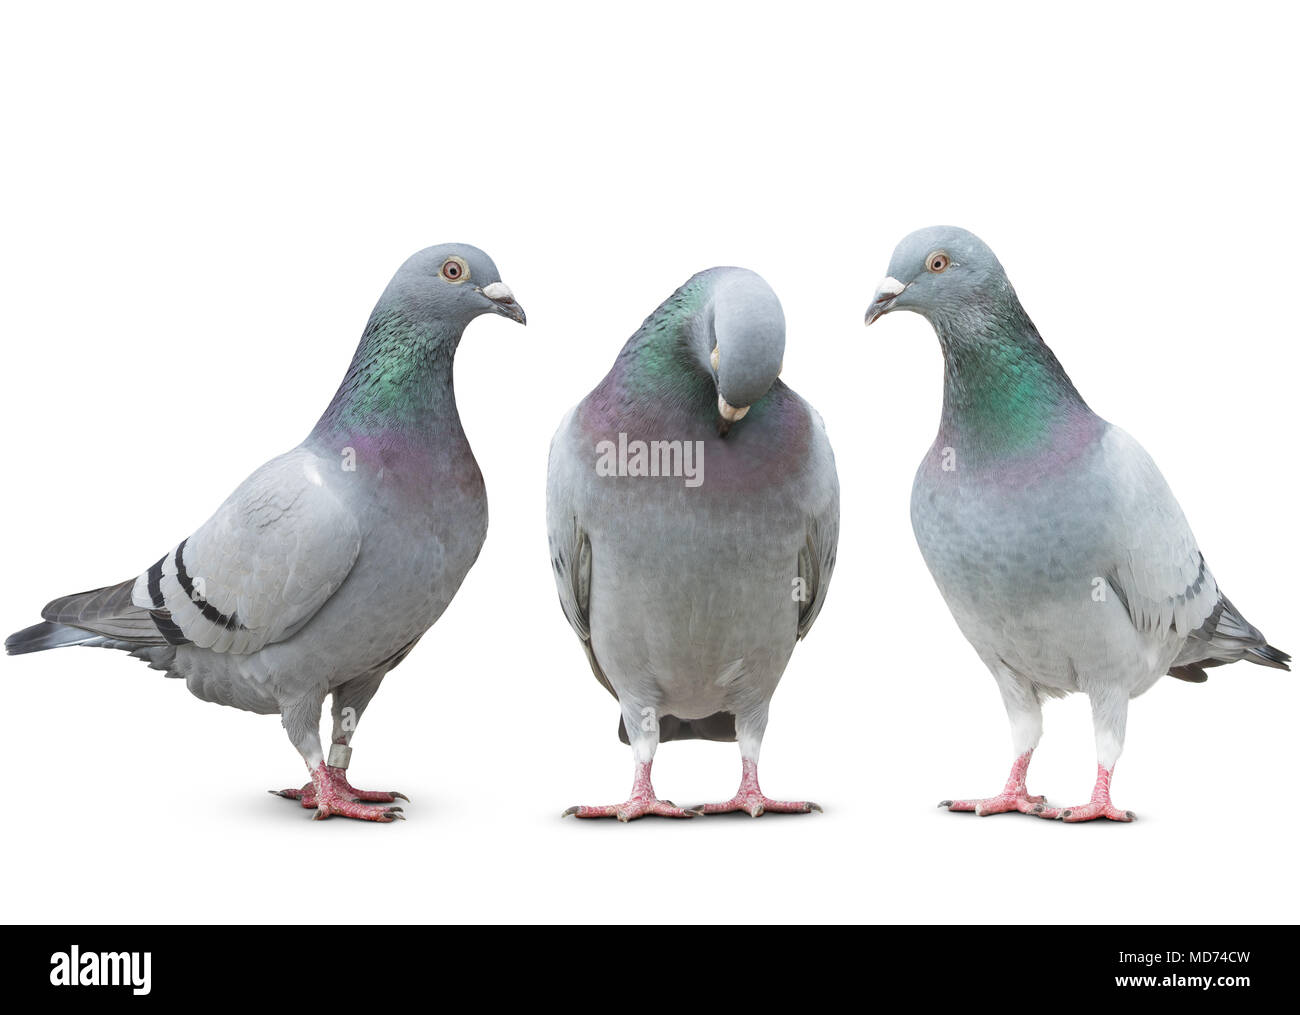 trhee pigeon bird friend sad story on white background - Stock Image